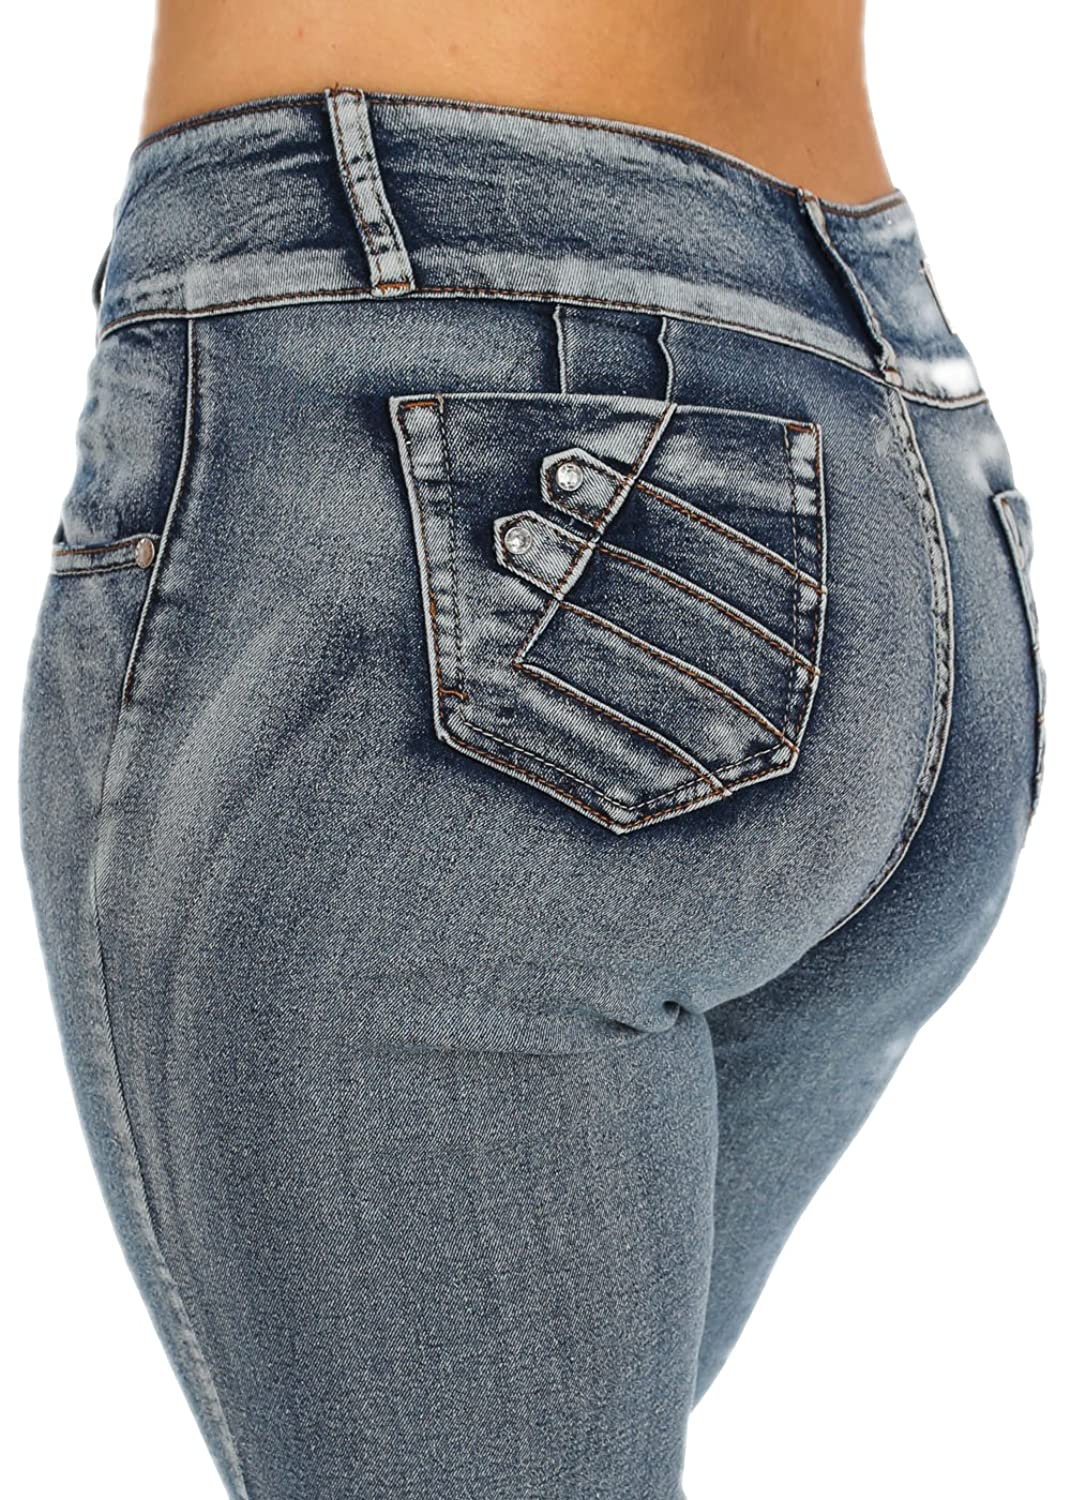 Plus Size Cheap But Lifting High Waist Washed Denim Jeans